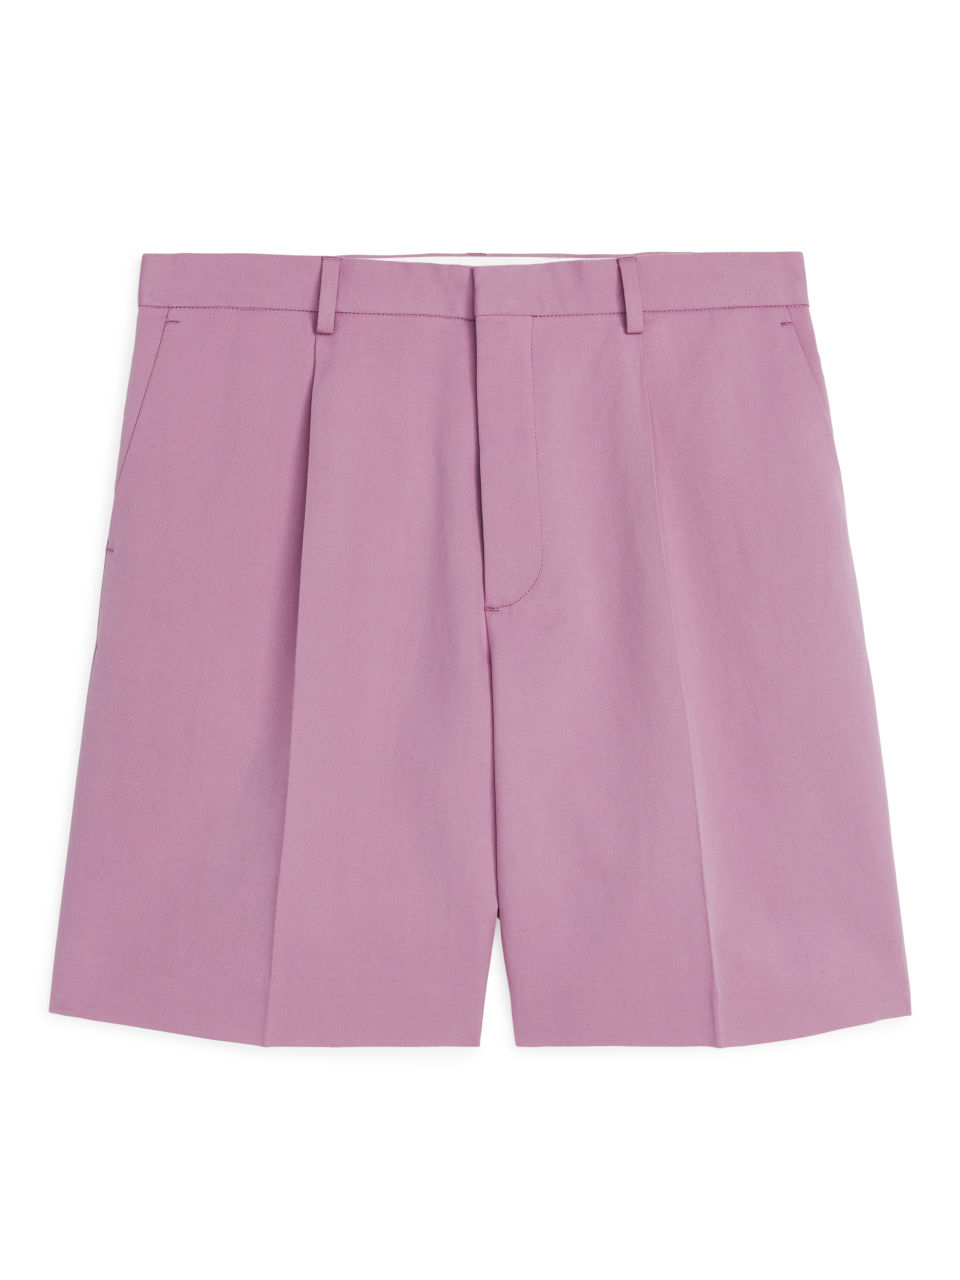 Pleated Linen Shorts - Pink